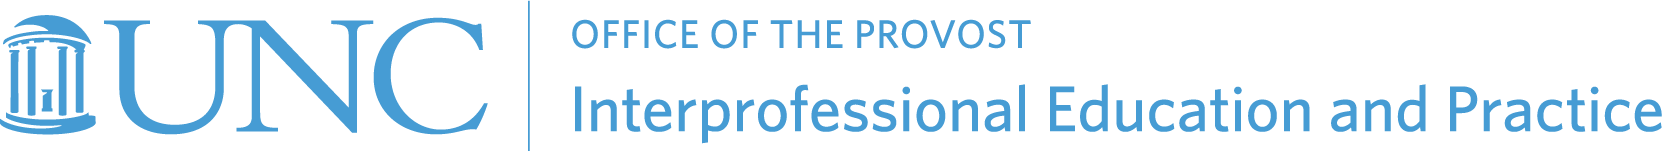 Office of Interprofessional Education and Practice